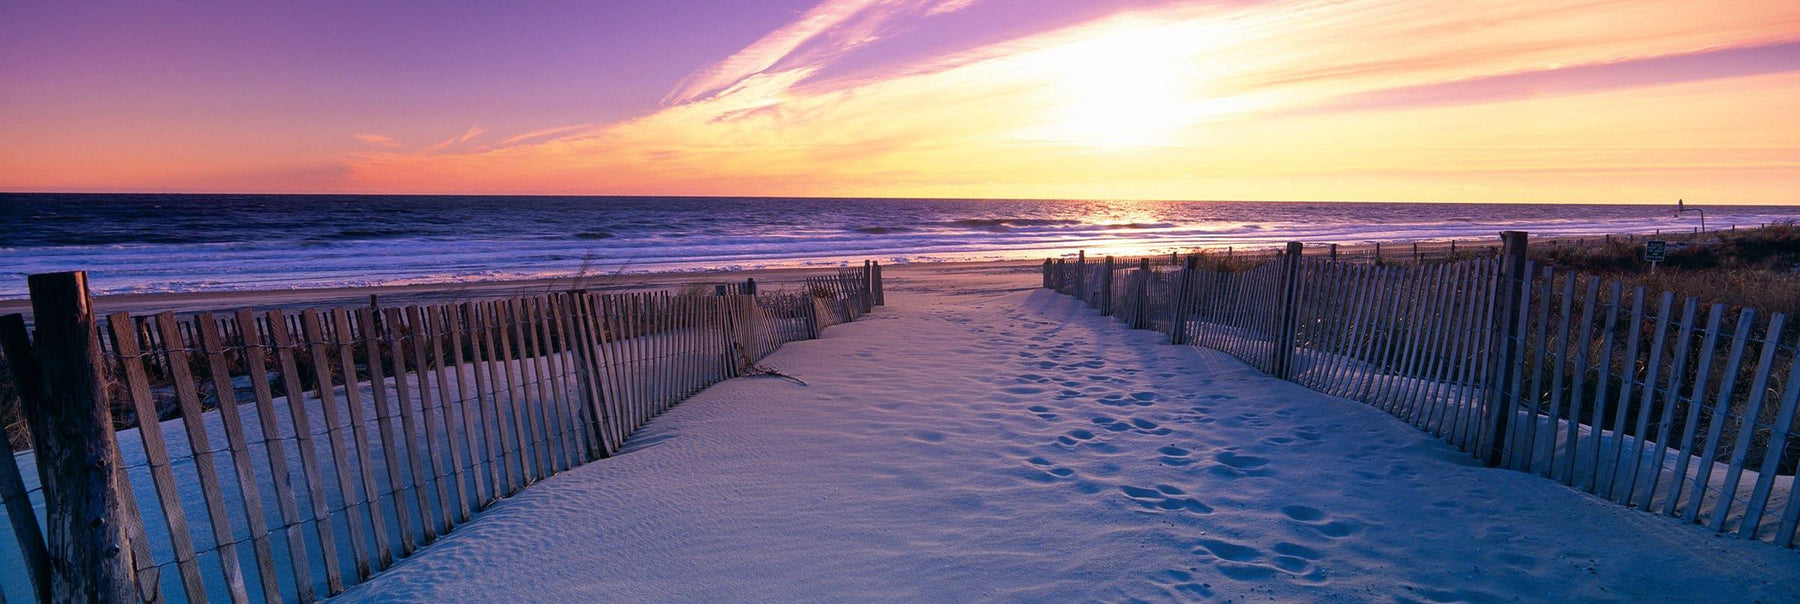 Sand pathway with picket fences leading to a beach in Newport Rhode Island during sunrise